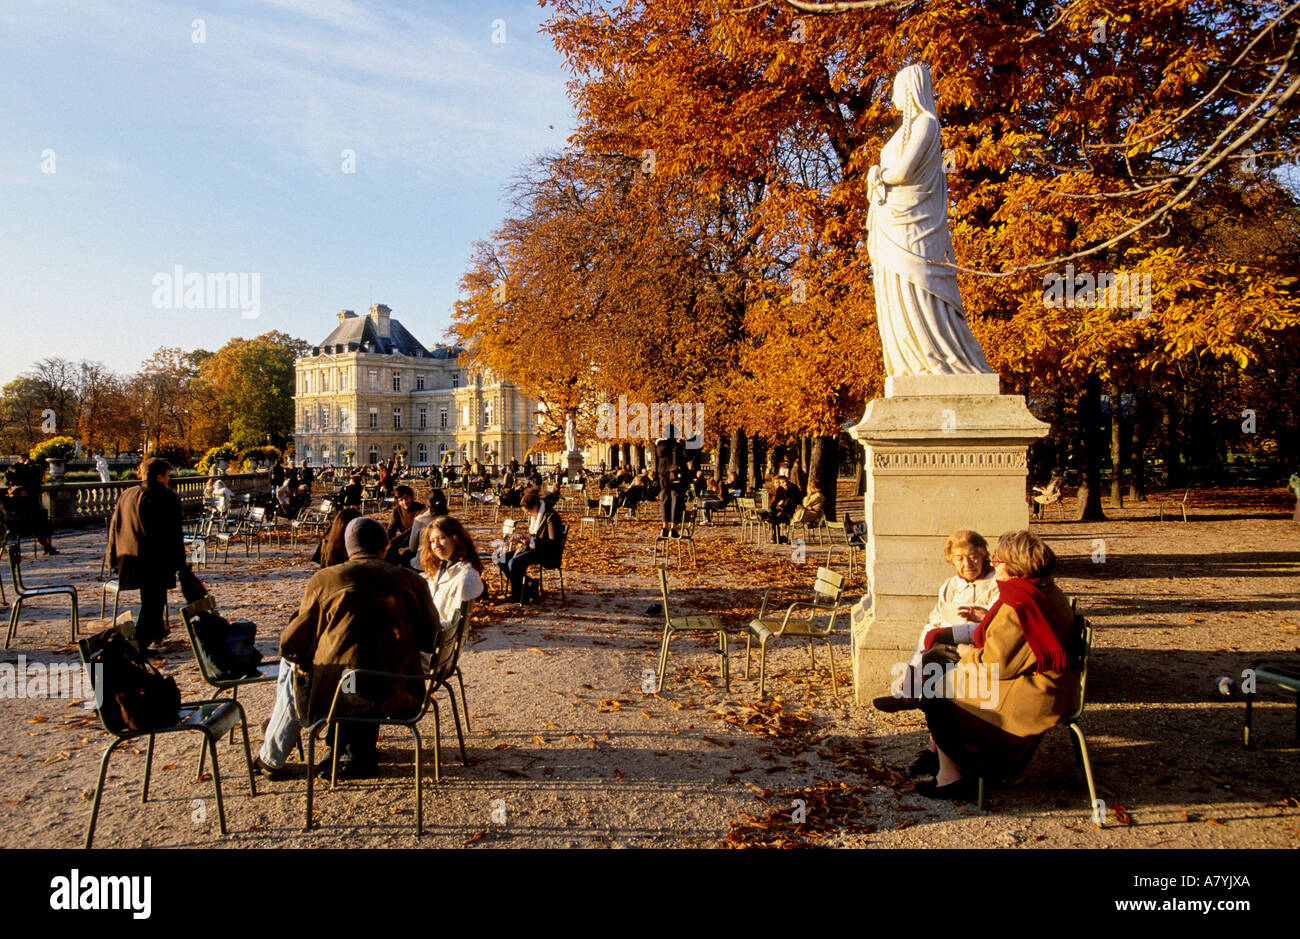 fall in paris france - photo #38